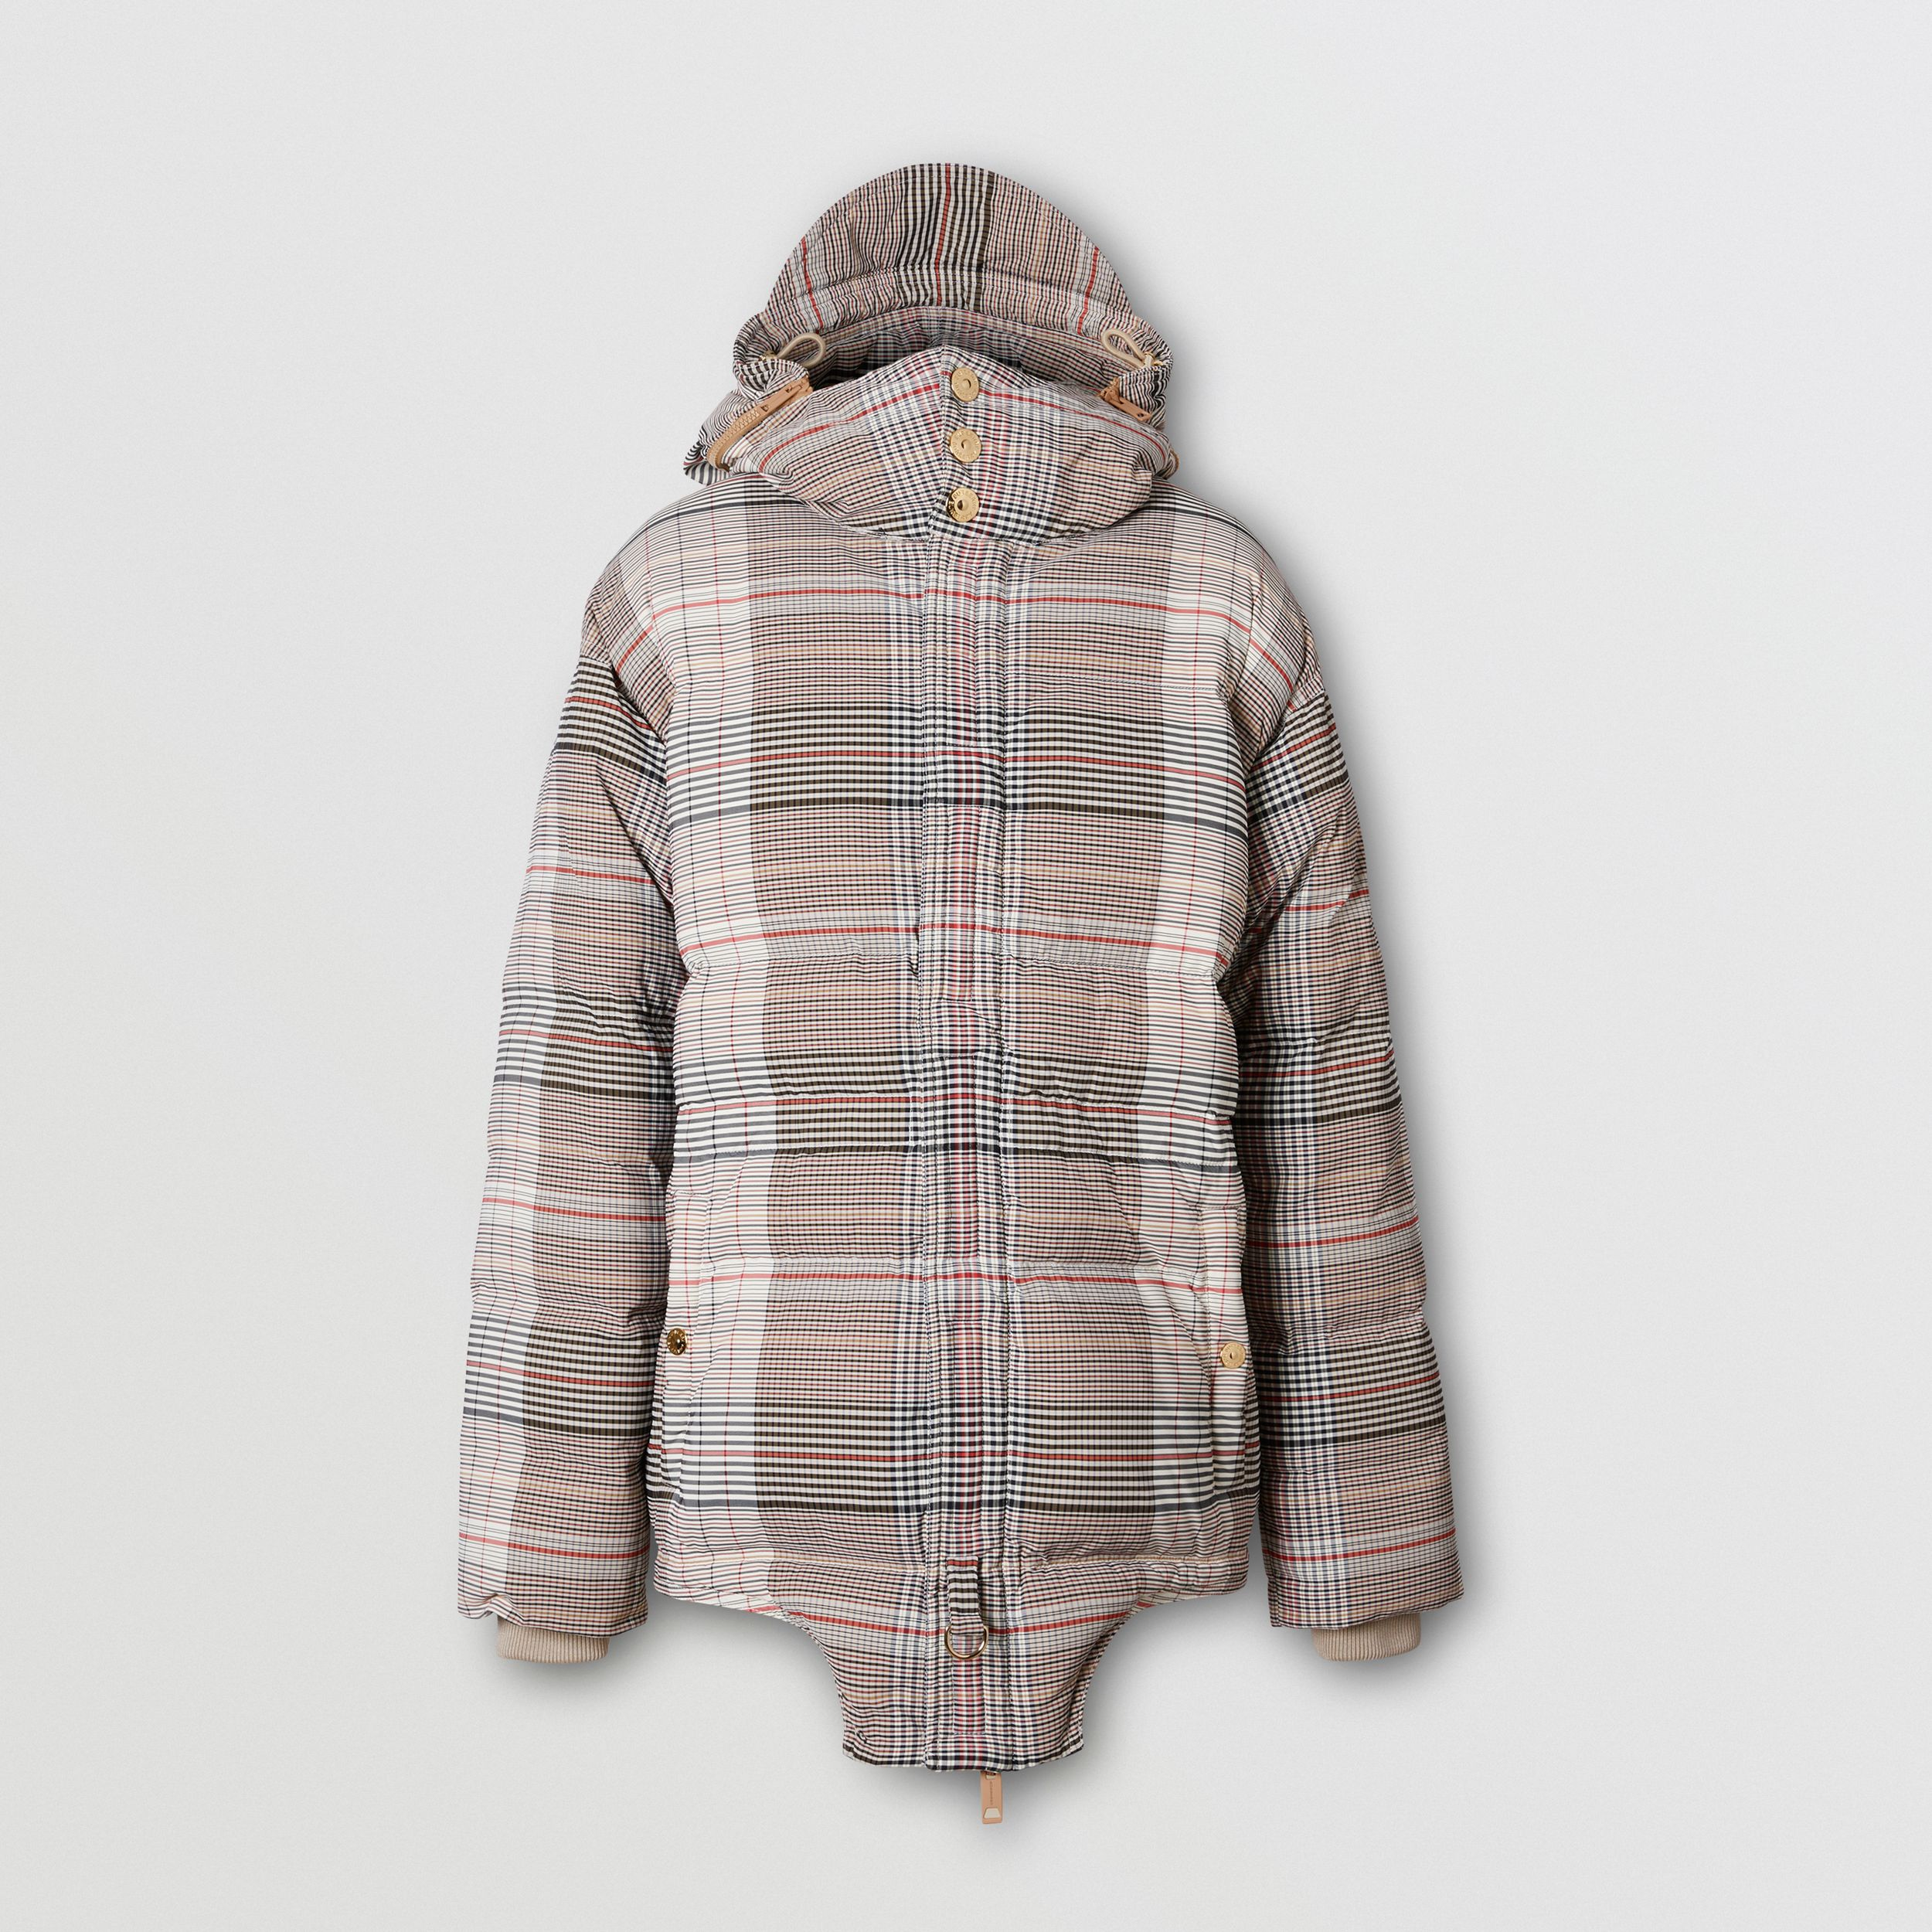 Cut-out Hem Check Nylon Twill Puffer Jacket in Beige | Burberry - 4